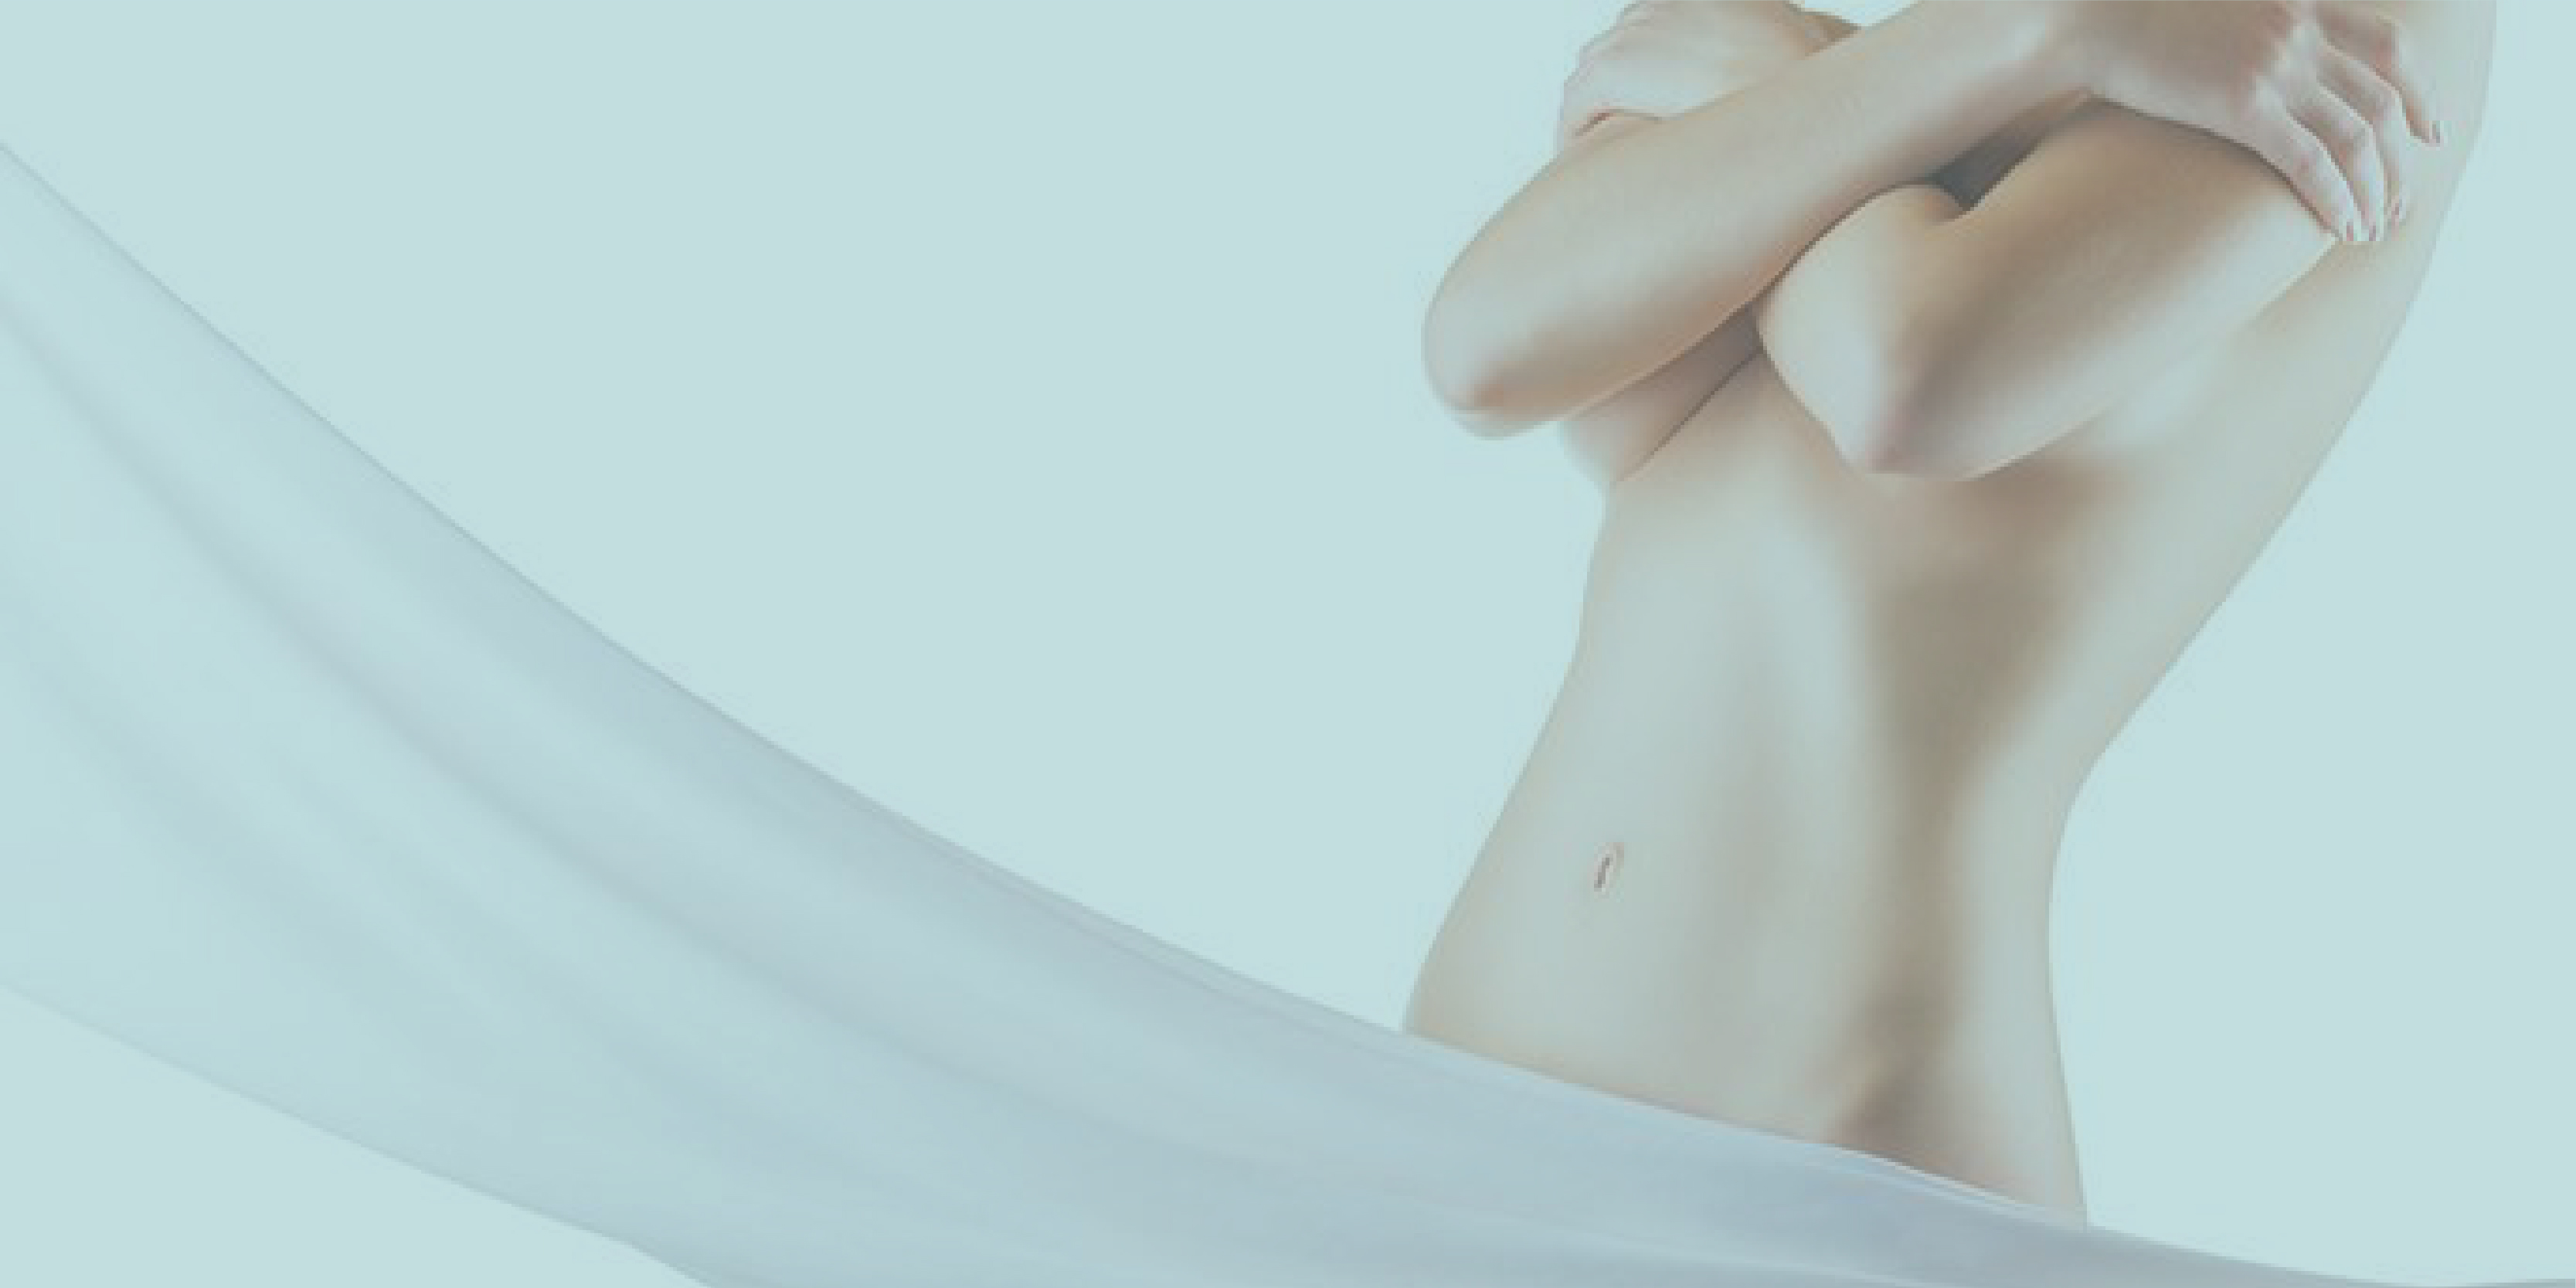 Woman holding her body with white cloth wrapped around her pelvic area.